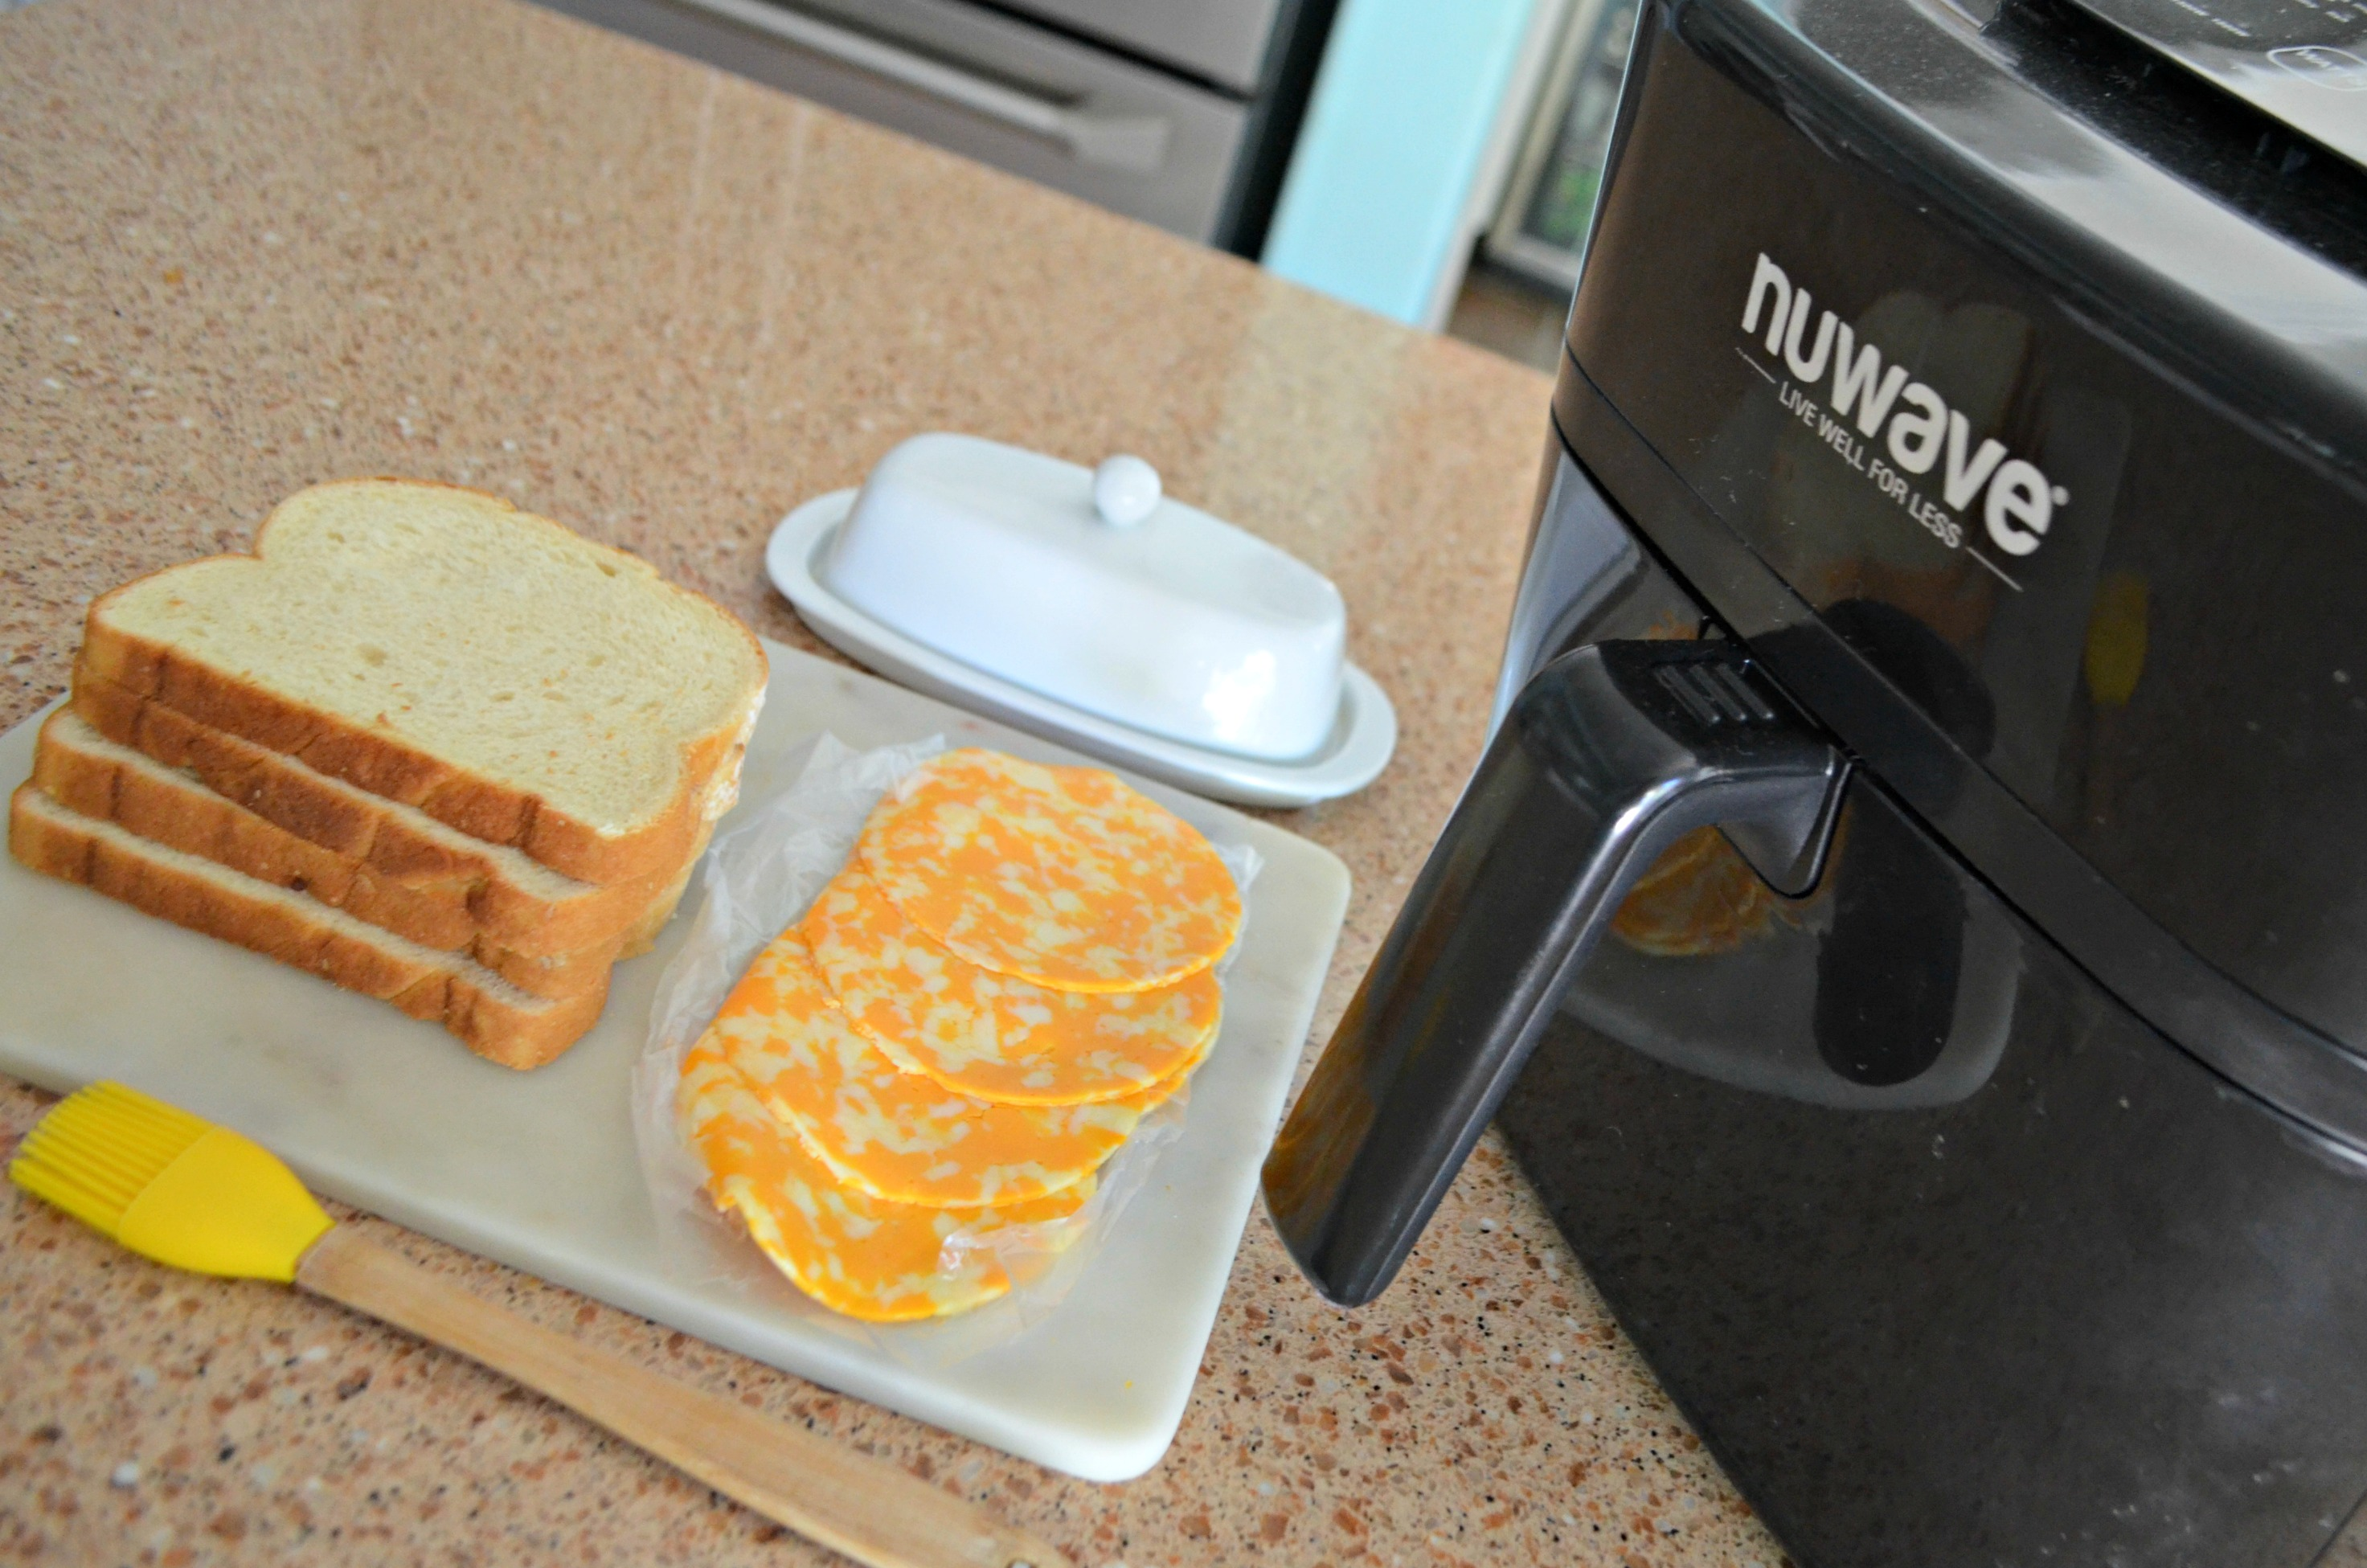 air fryer grilled cheese - ingredients on the counter